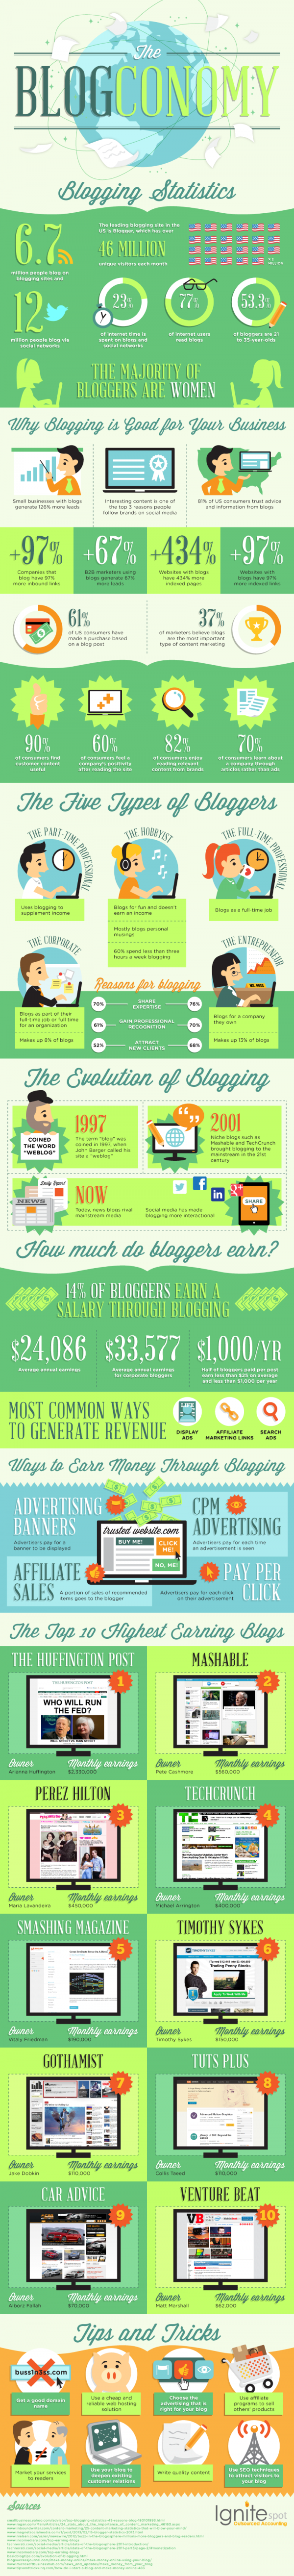 facts on blogs_blog economy